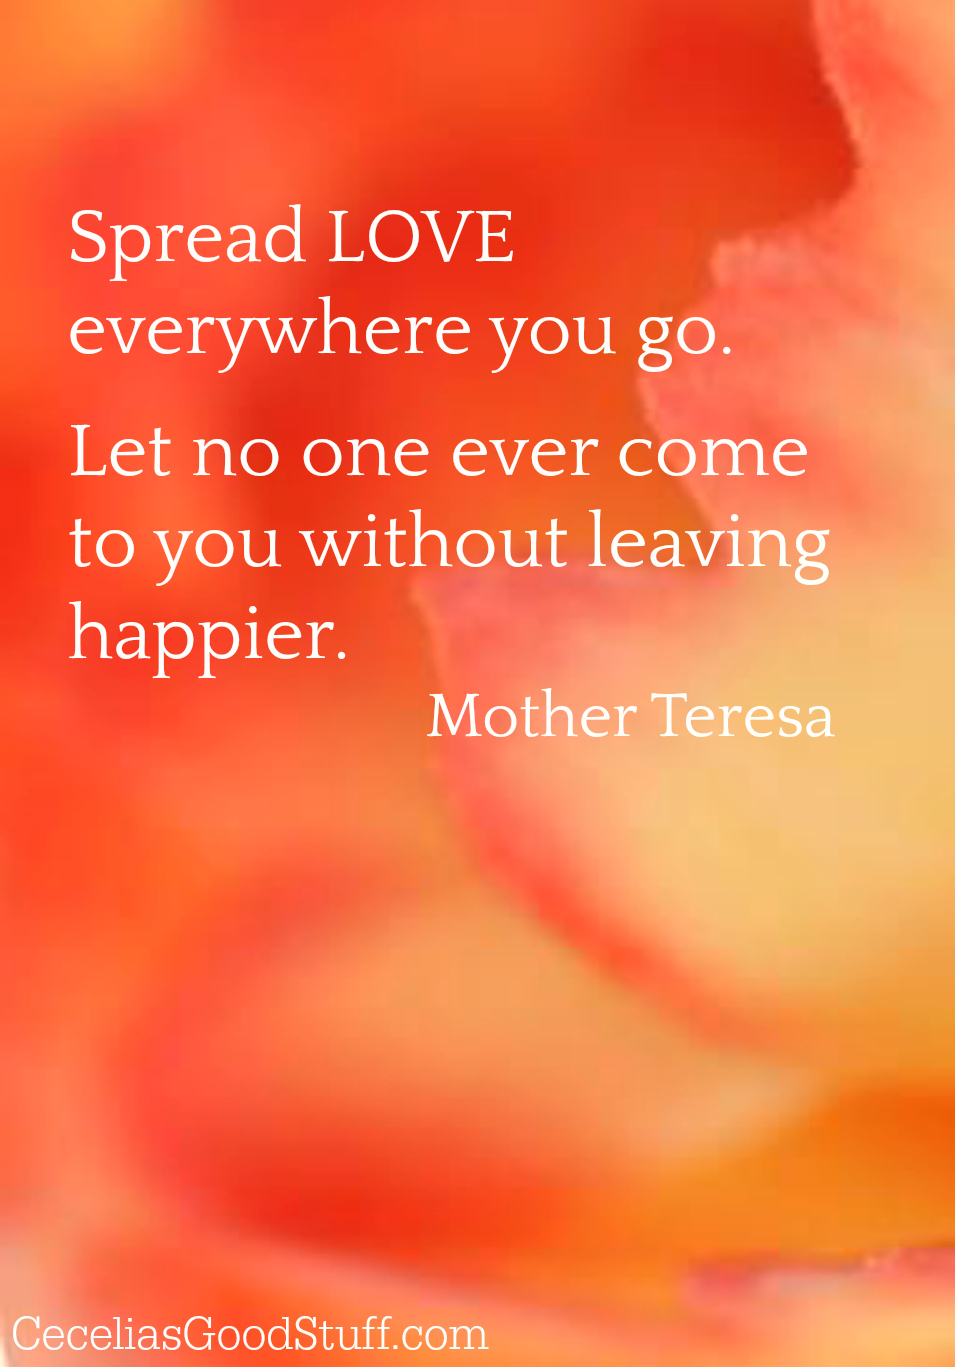 Spread LOVE quote by Mother Teresa | CeceliasGoodStuff.com | Good Food for the Soul